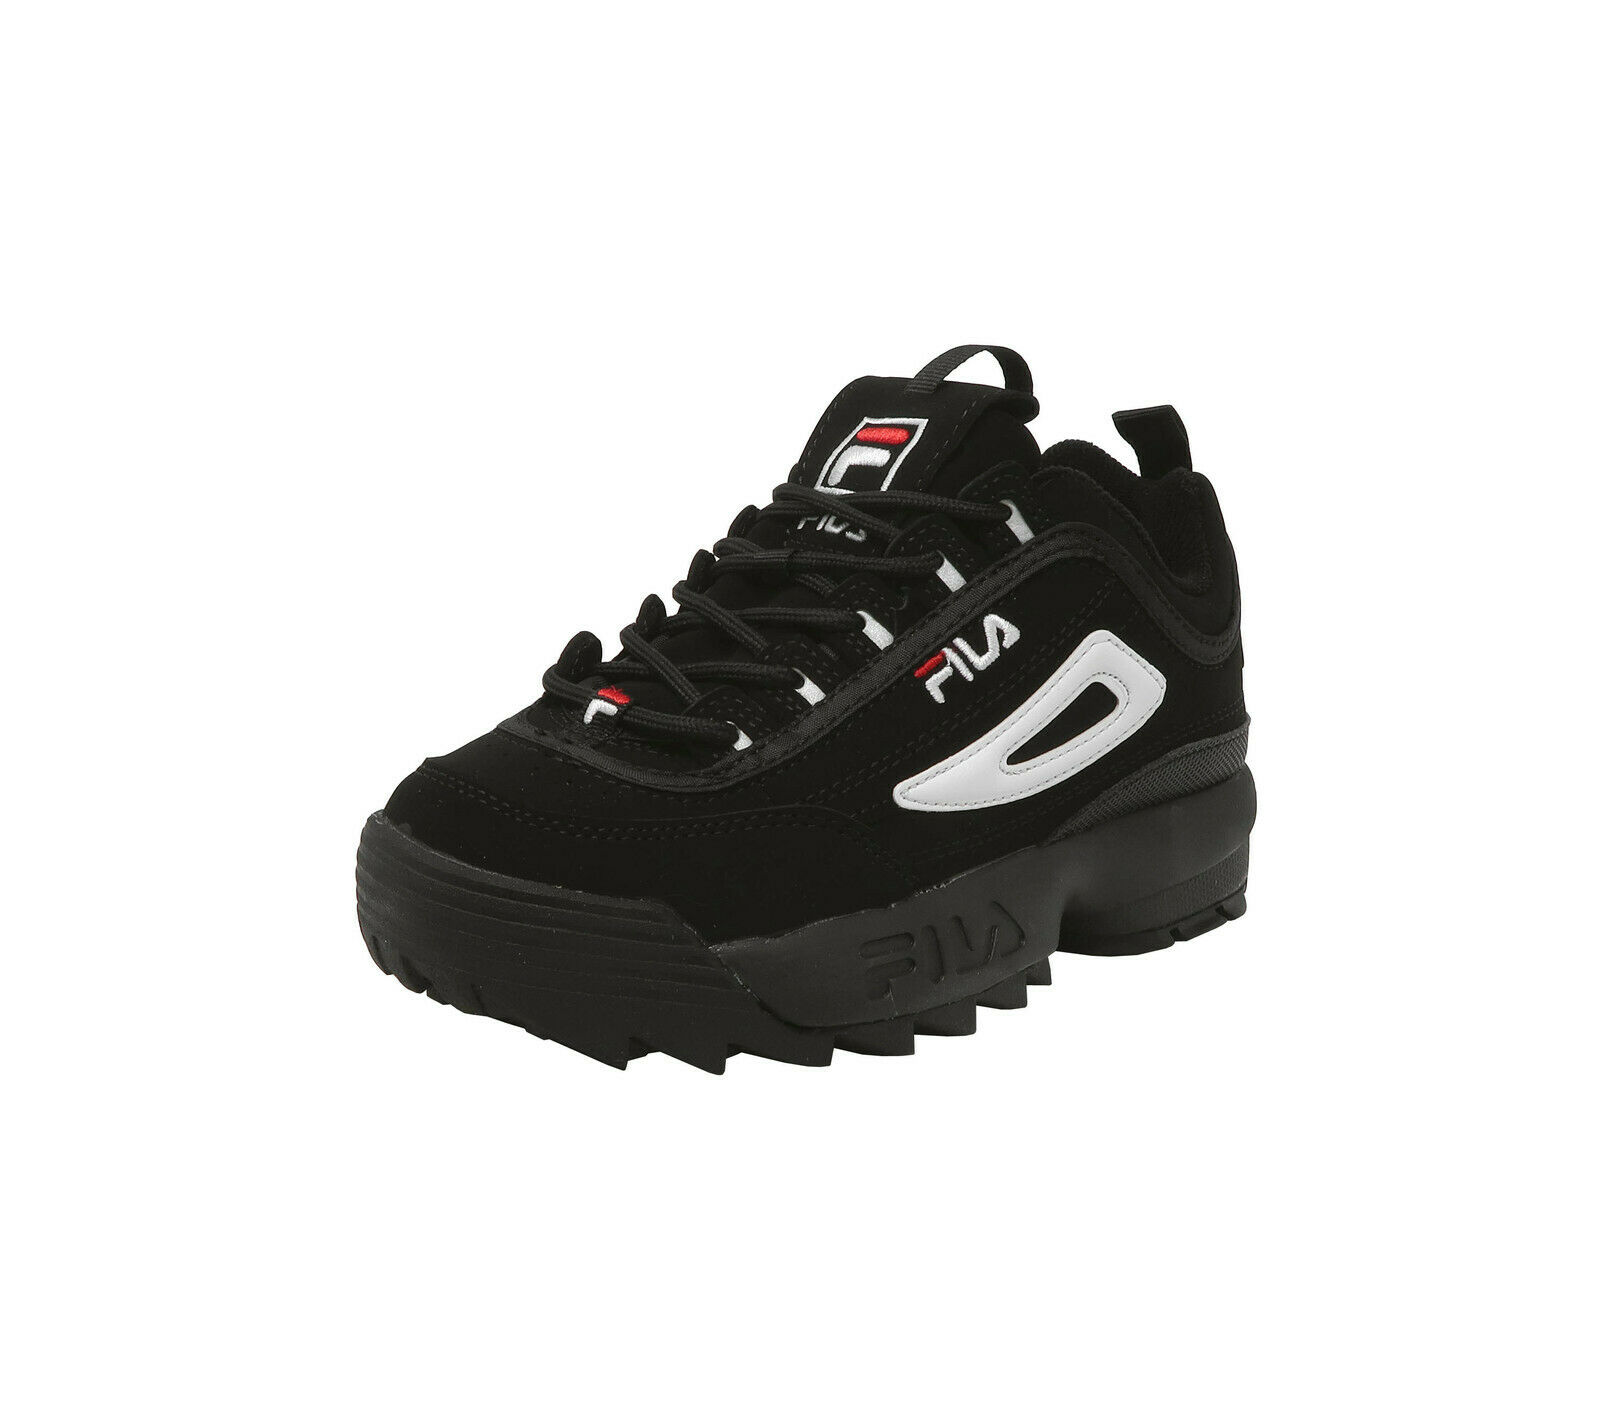 fila shoes for girl